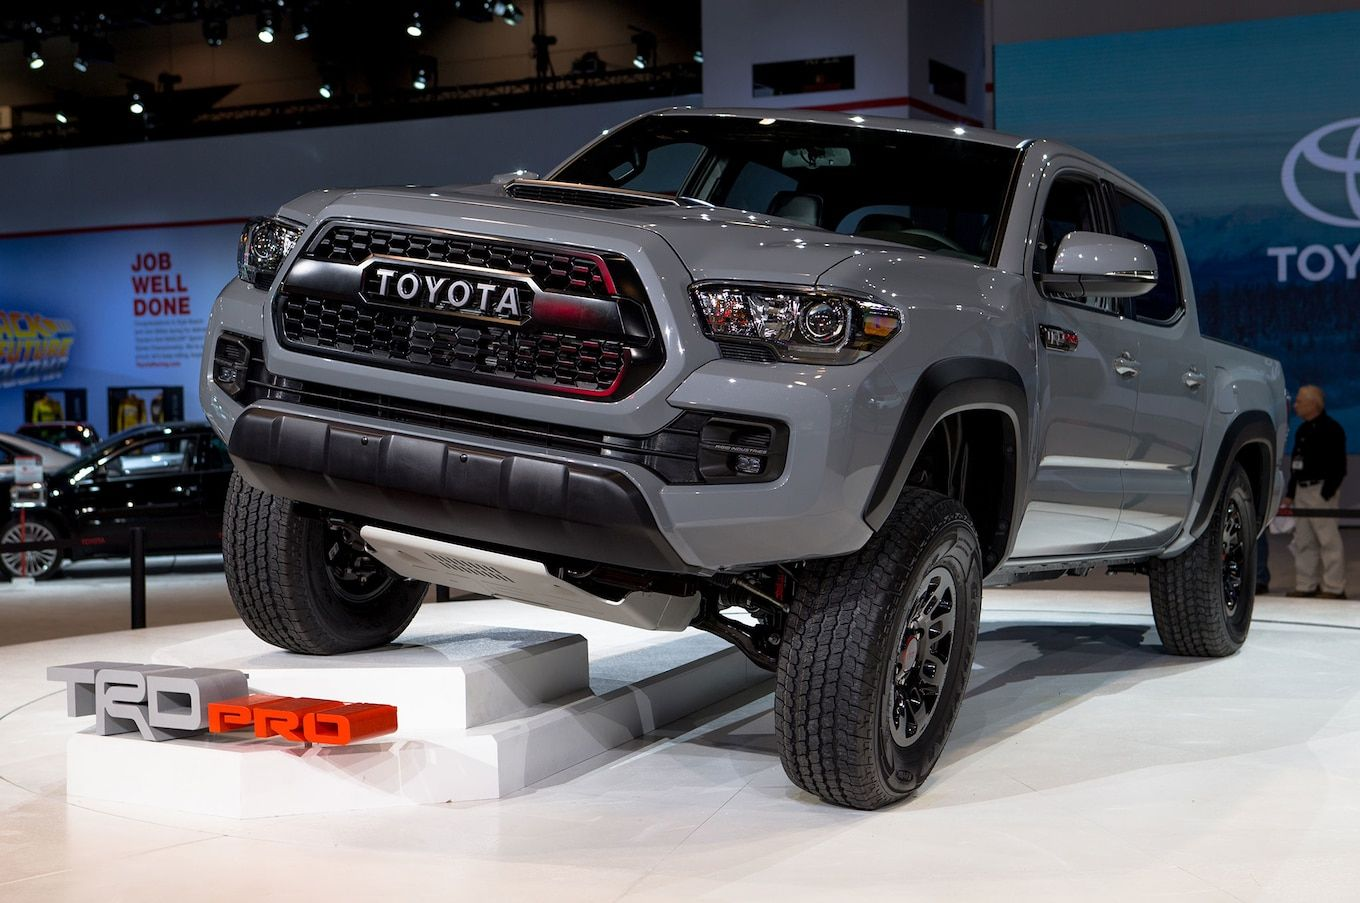 2019 toyota Tacoma Diesel Trd Pro Redesign | Toyota tacoma ...